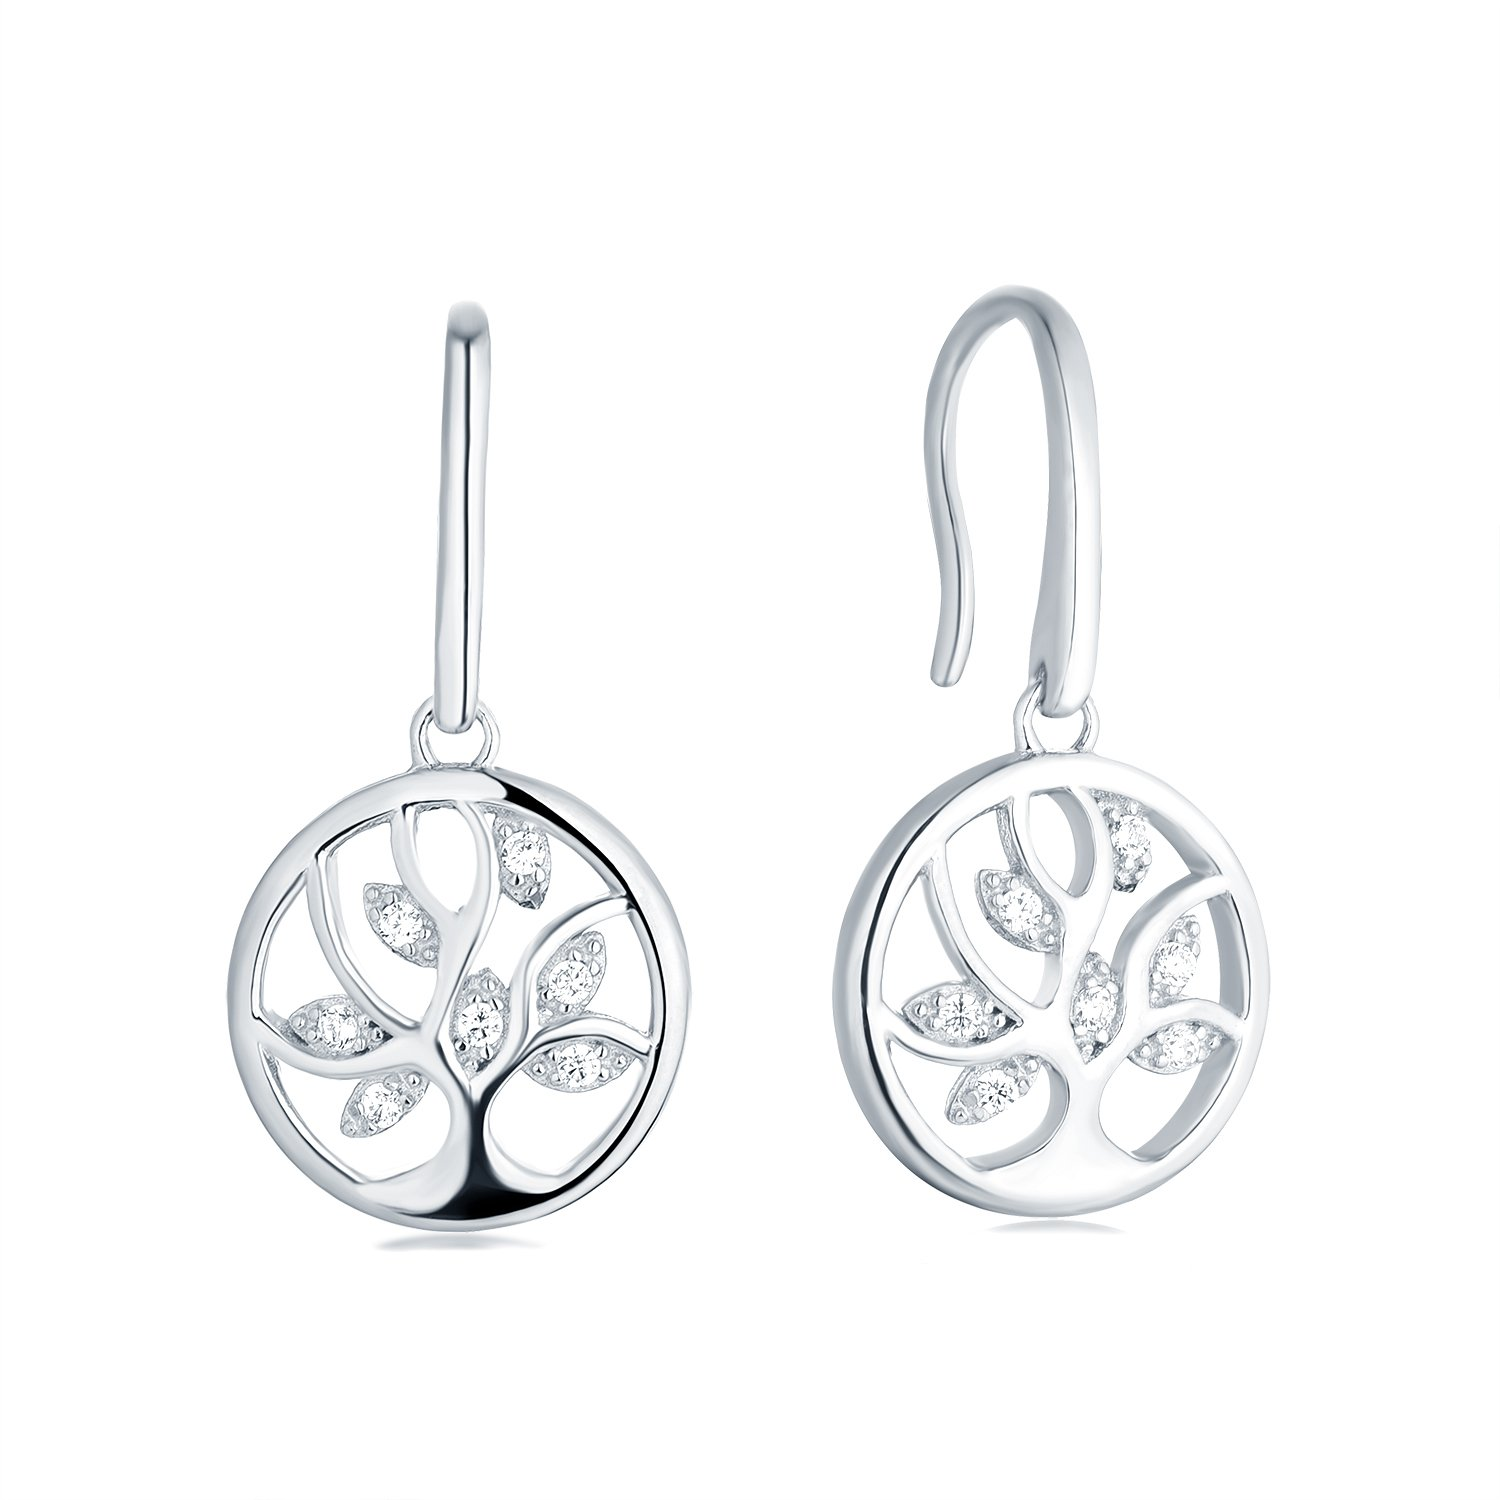 Tree Earrings 925 Sterling Silver Cubic Zirconia Family Tree of Life Hook Dangle & Drop Earrings